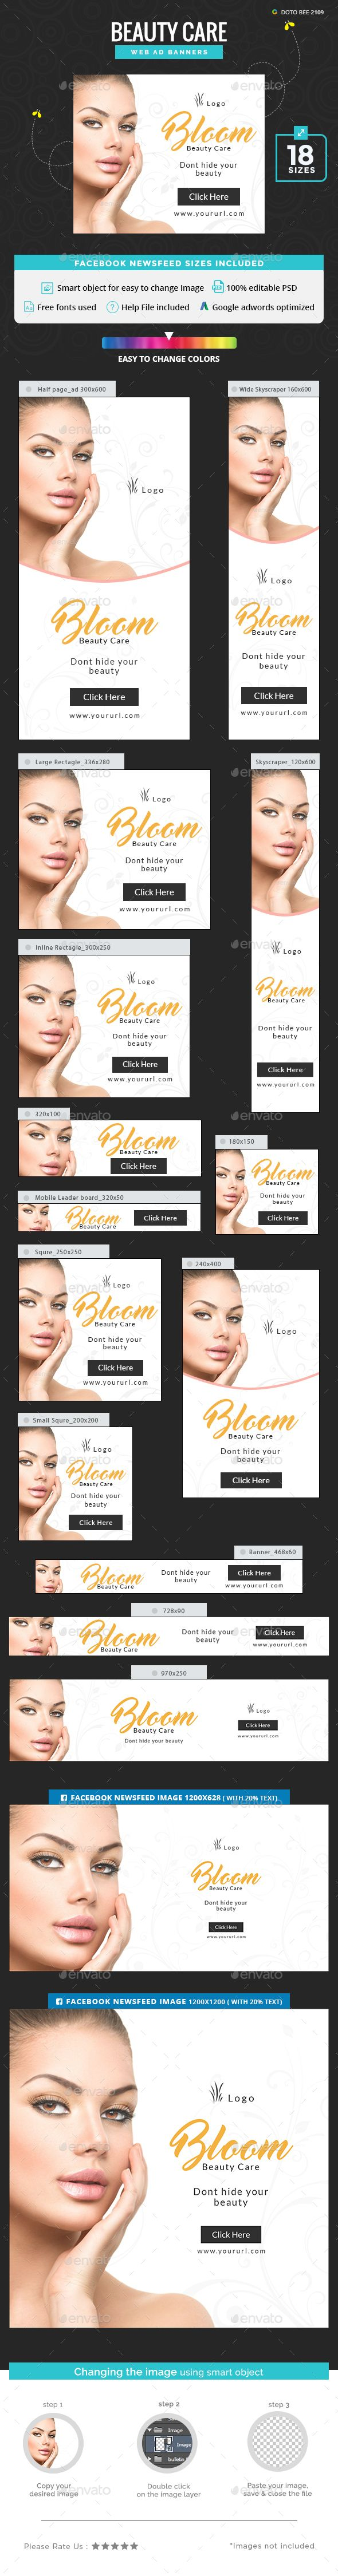 #Beauty #Care #Banner #template - #Banners & #Ads #Web #Elements #design. download here: https://graphicriver.net/item/beauty-care-banners/20192724?ref=yinkira